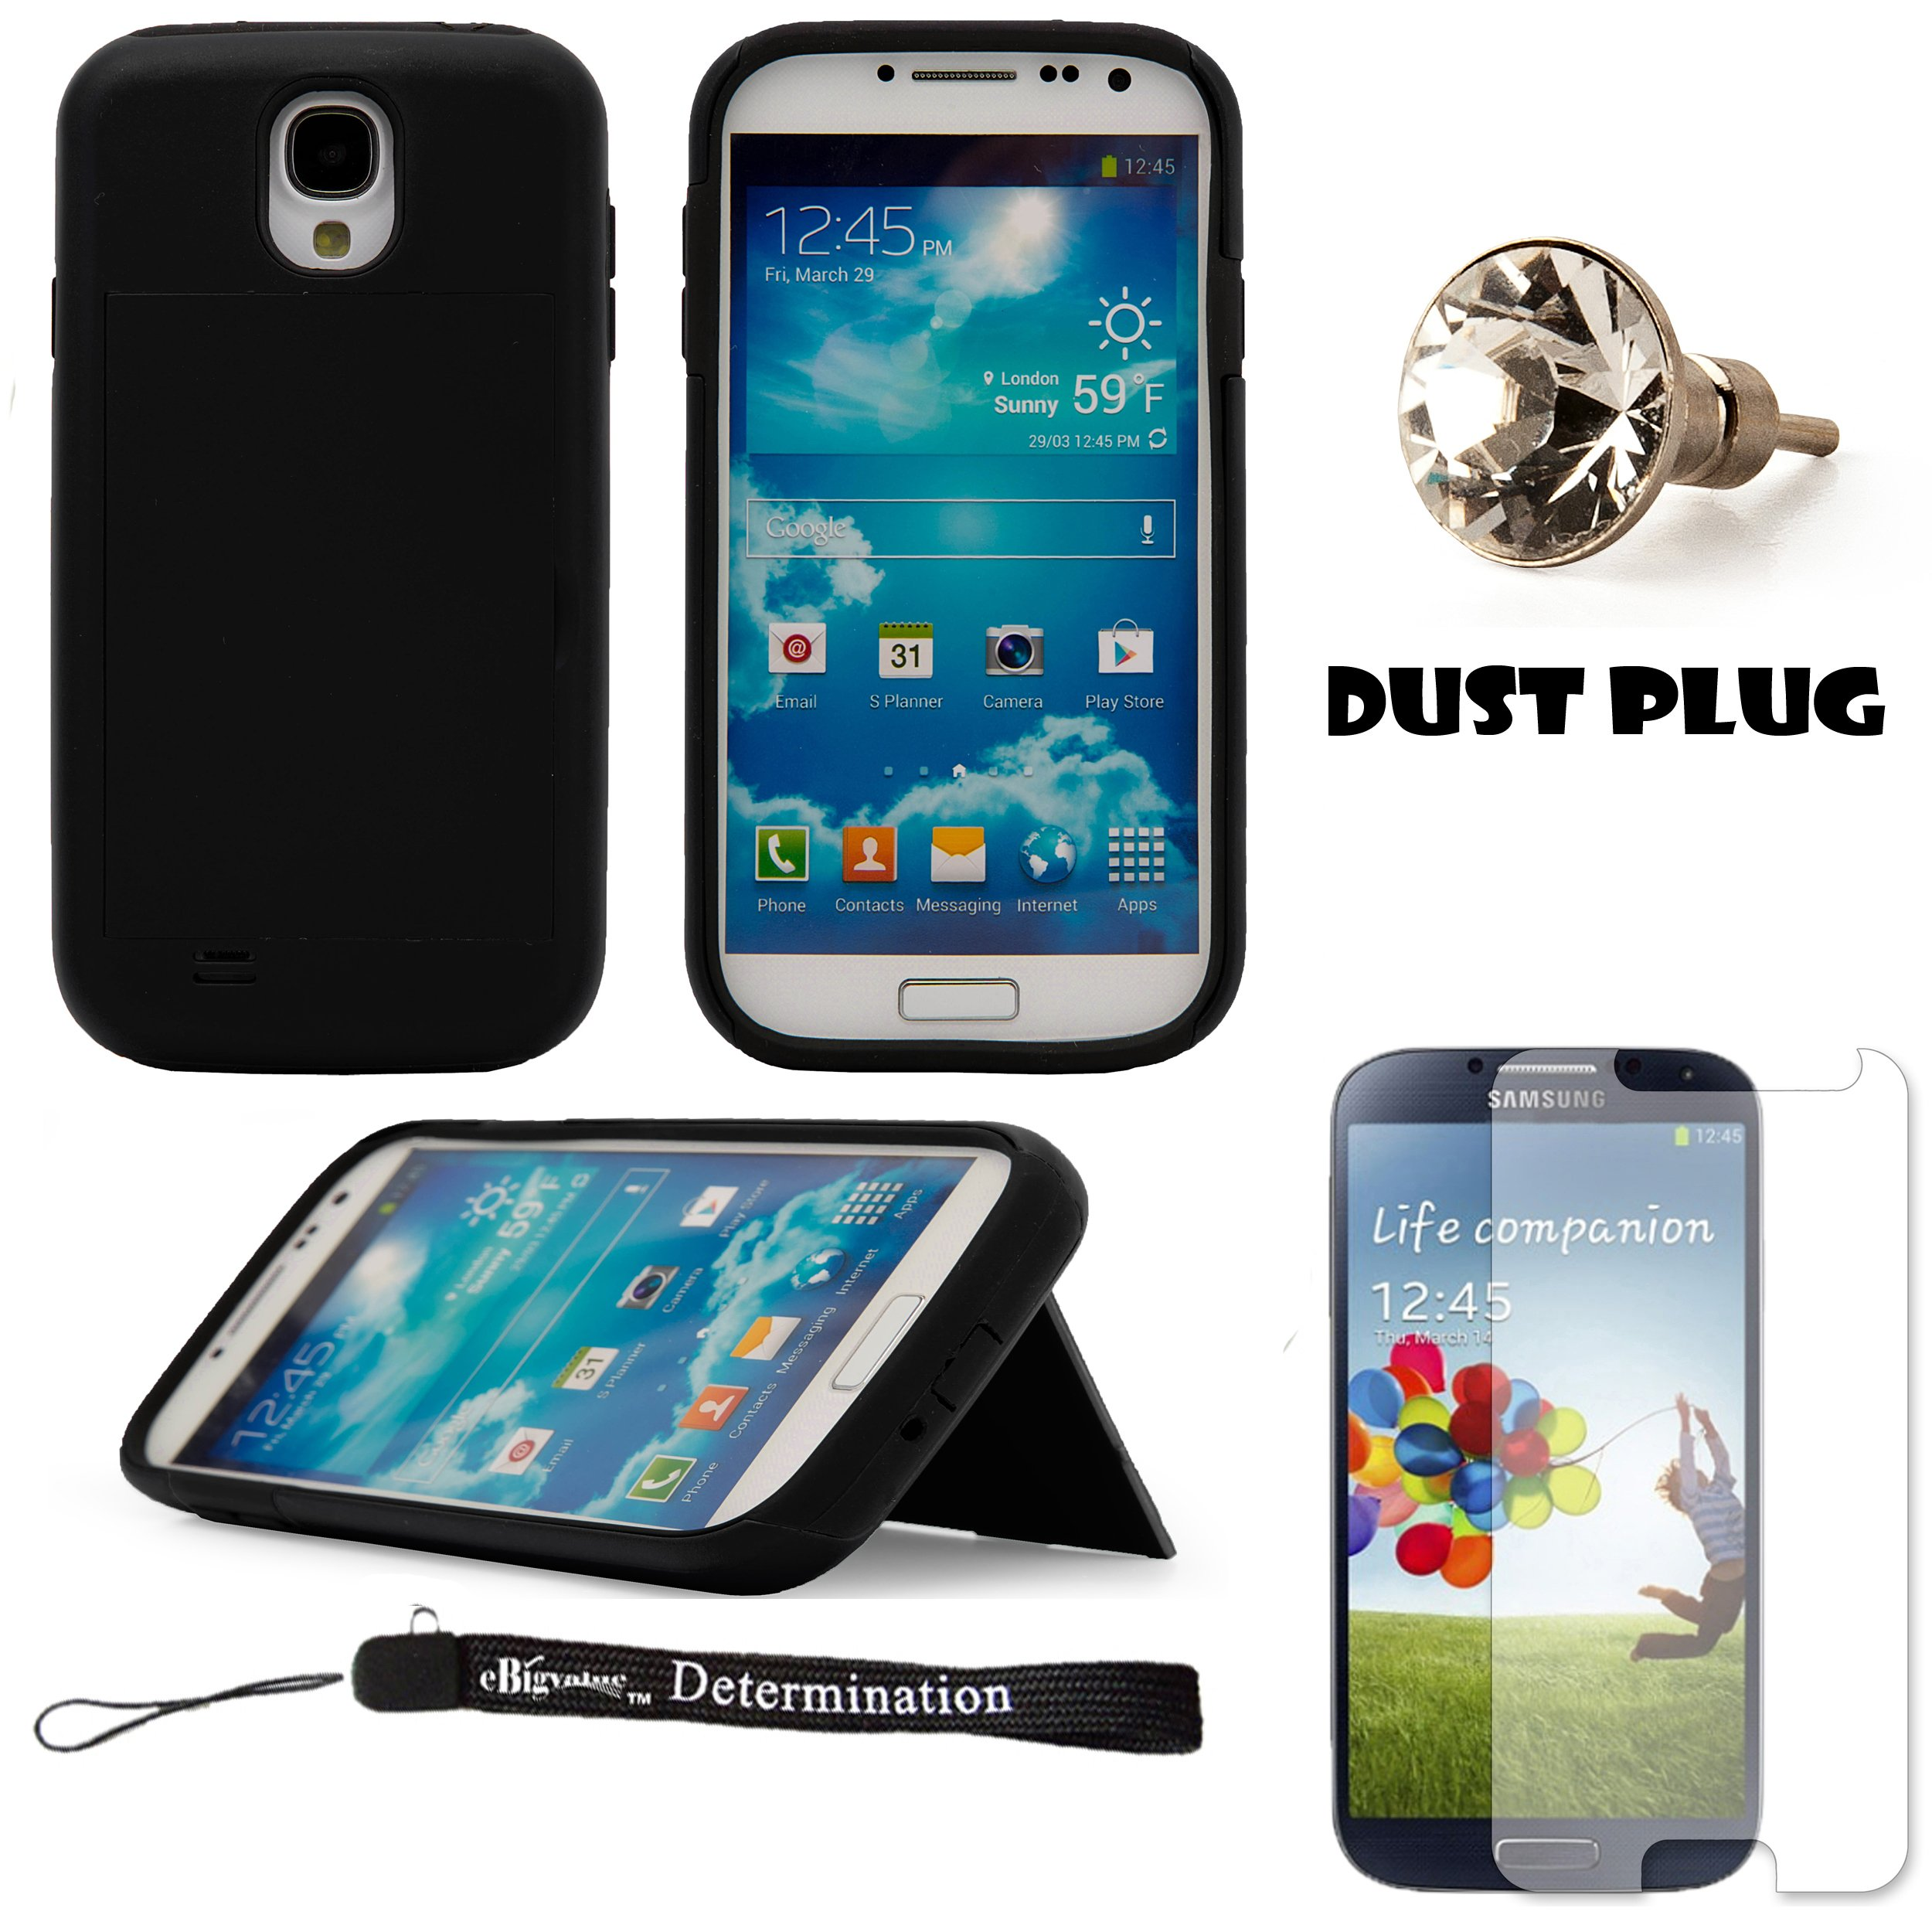 Black 2-Piece hard Protective Case with Credit Card Holder Slot and Stand For Samsung Galaxy S4 Android Smartphone 4G LTE (Jelly Bean) + Silver Swarovski Crystal Headphone Jack Dust Plug + Samsung Galaxy S4 Screen Guard Protector + an eBigValue ™ Determ